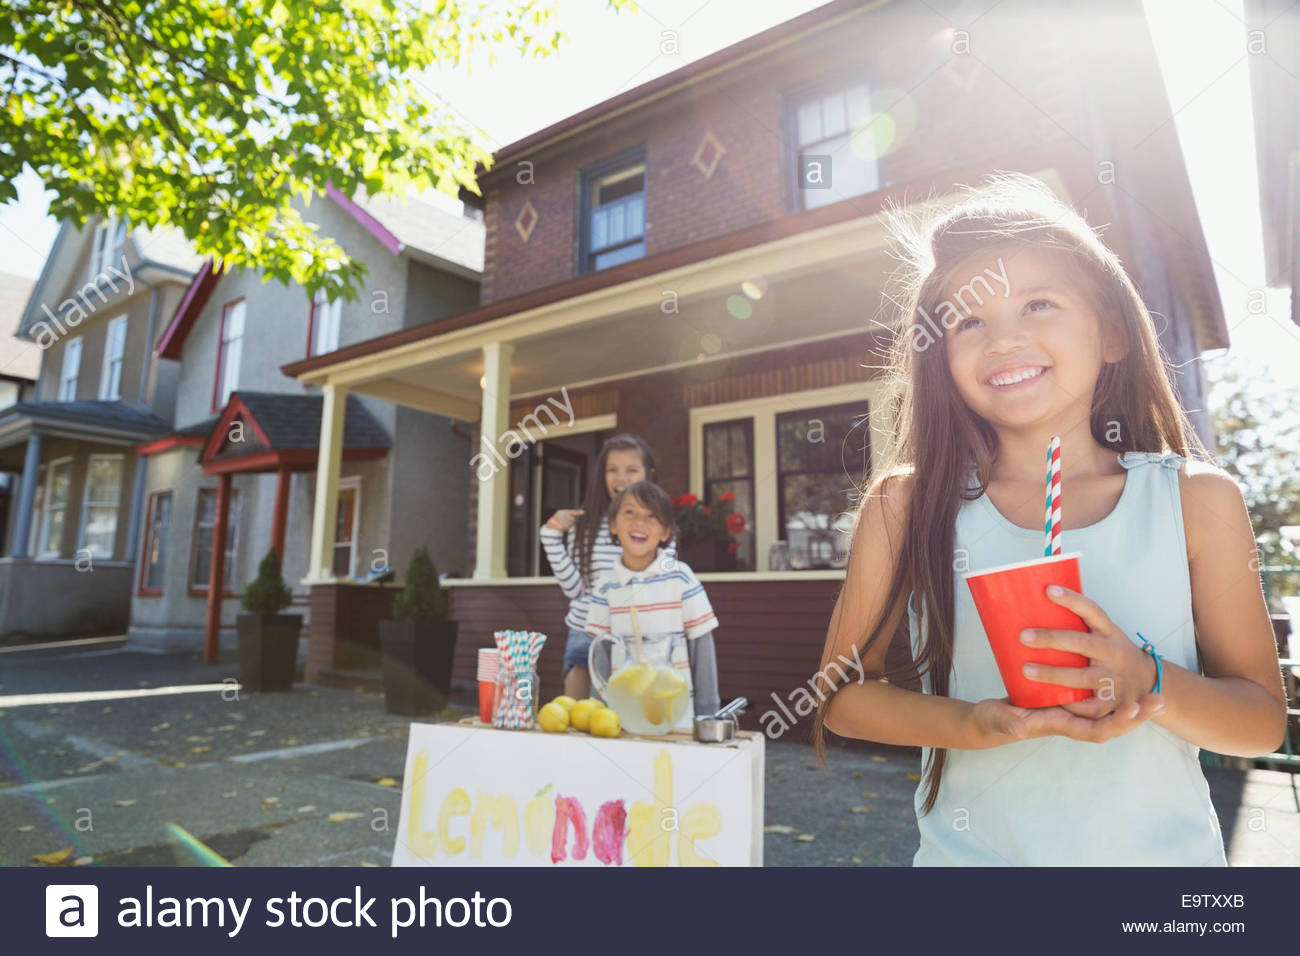 Smiling girl with cup at lemonade stand - Stock Image